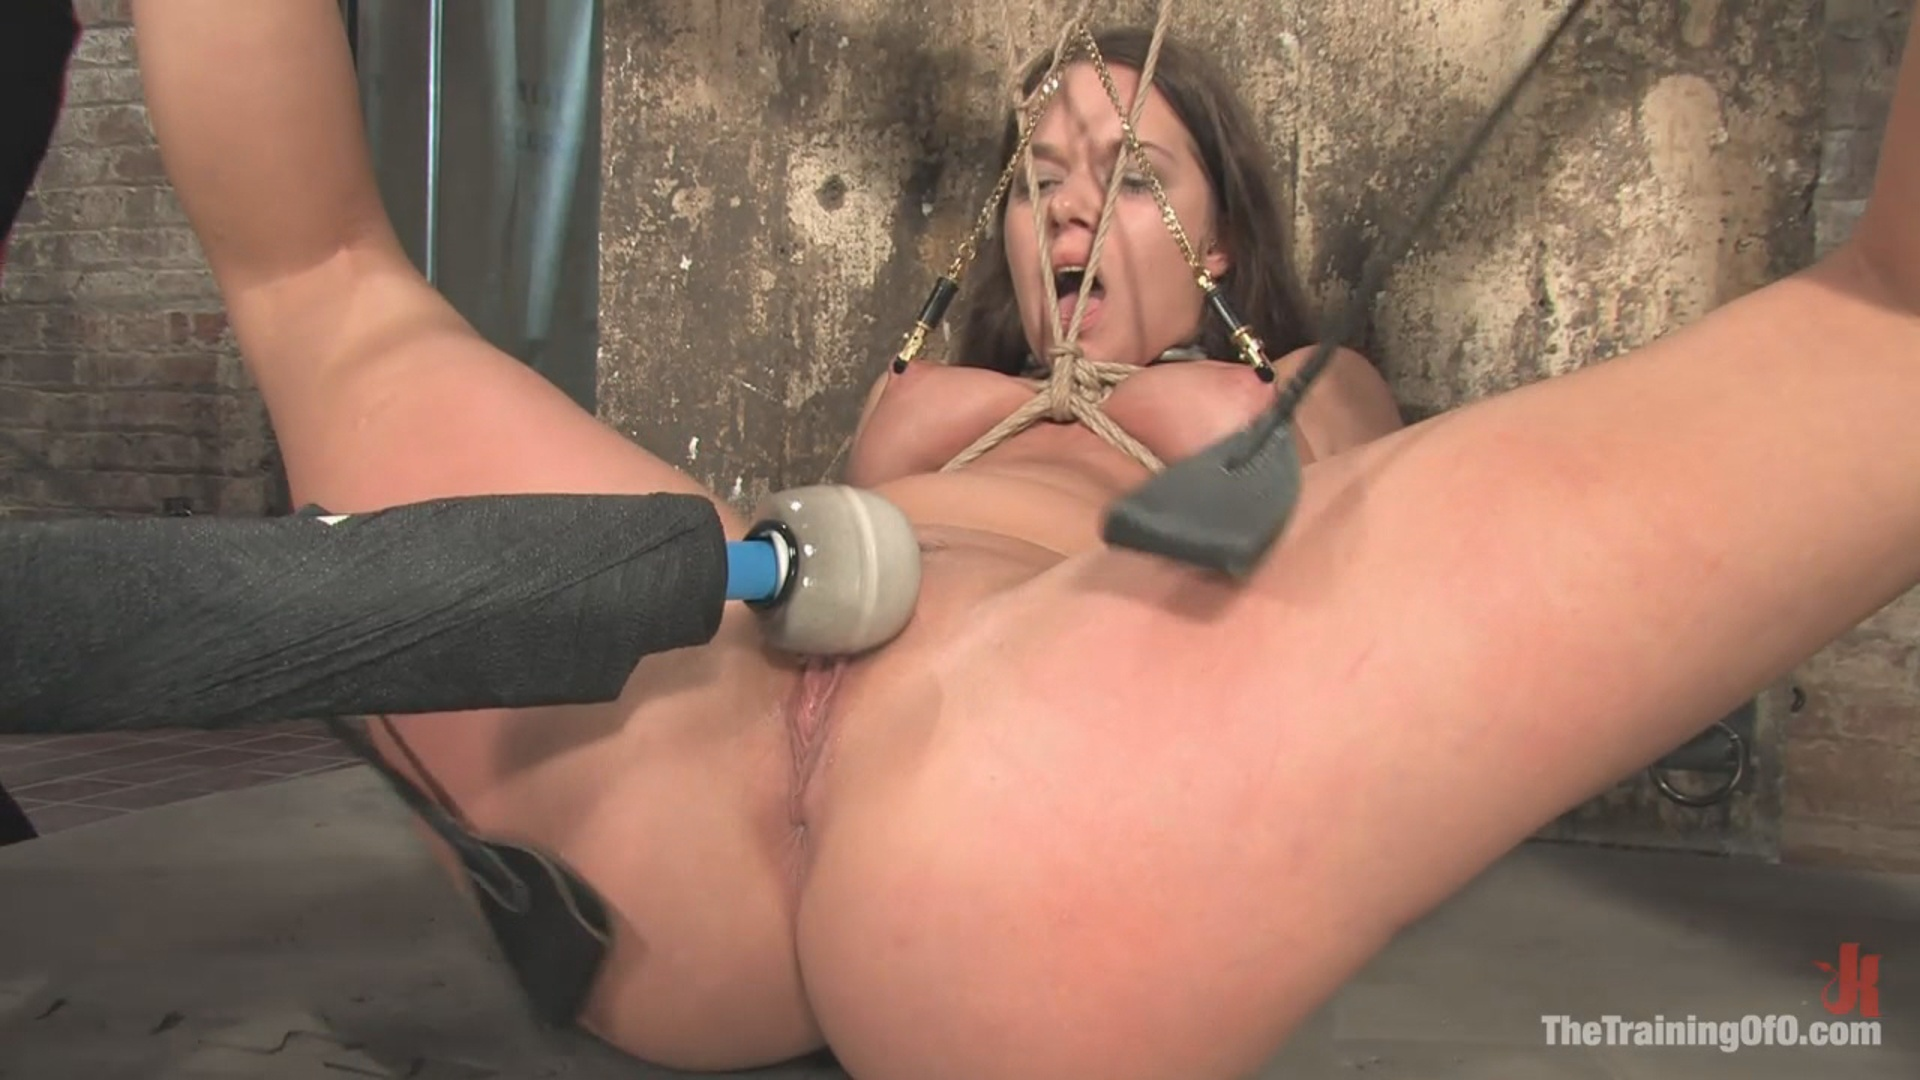 The Training Of O: The Training Of Devaun, Day Two xvideos171667